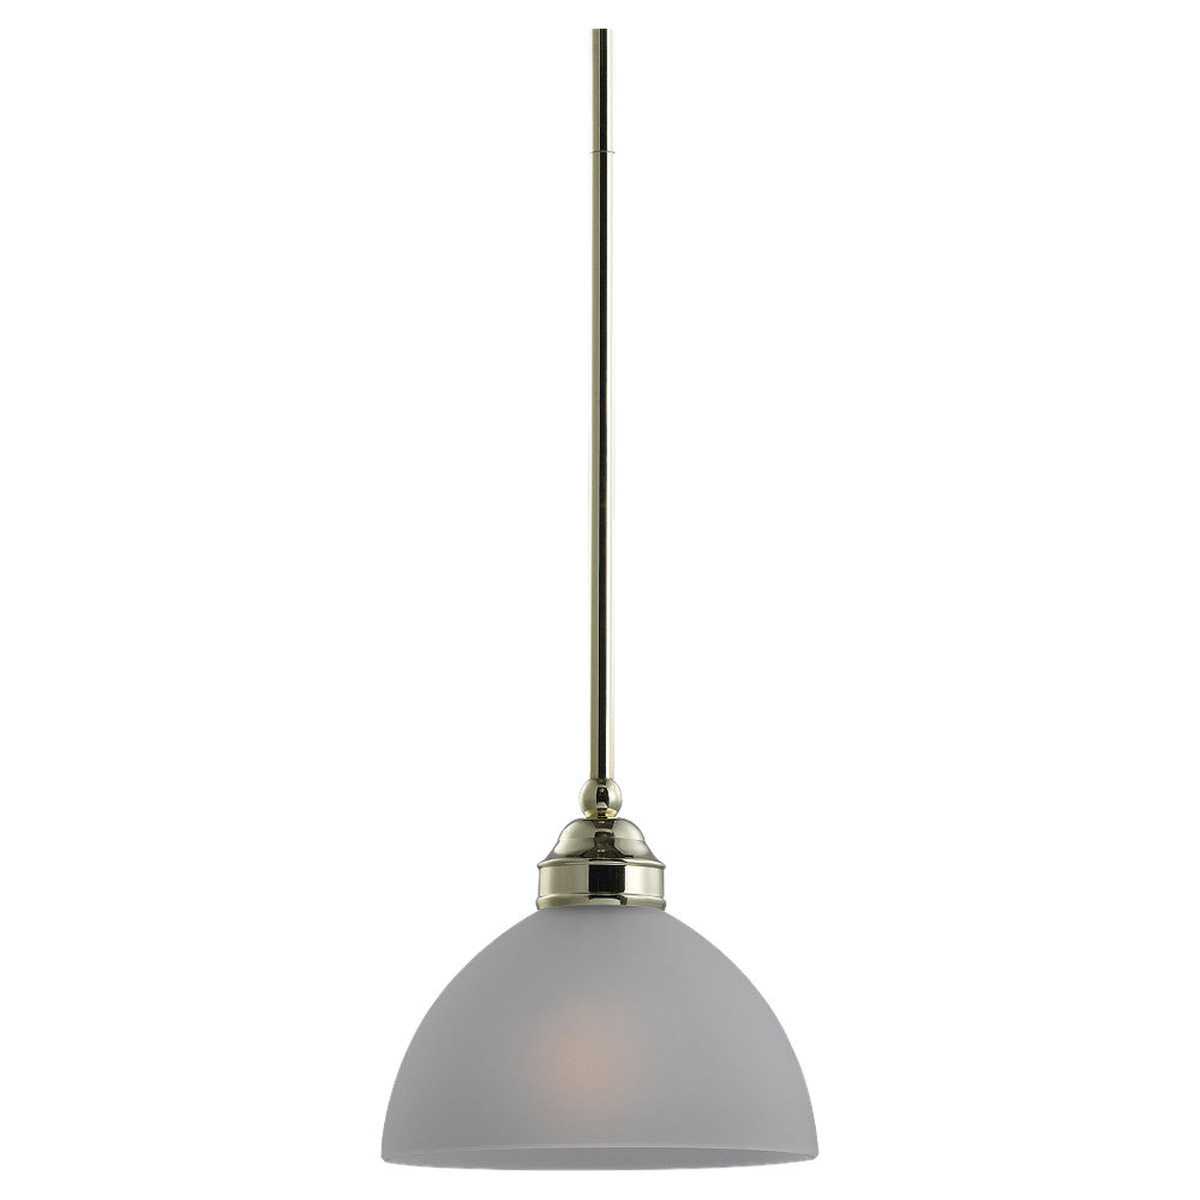 Sea Gull Lighting Linwood 1 Light Mini Pendant in Polished Brass 61225-02 photo